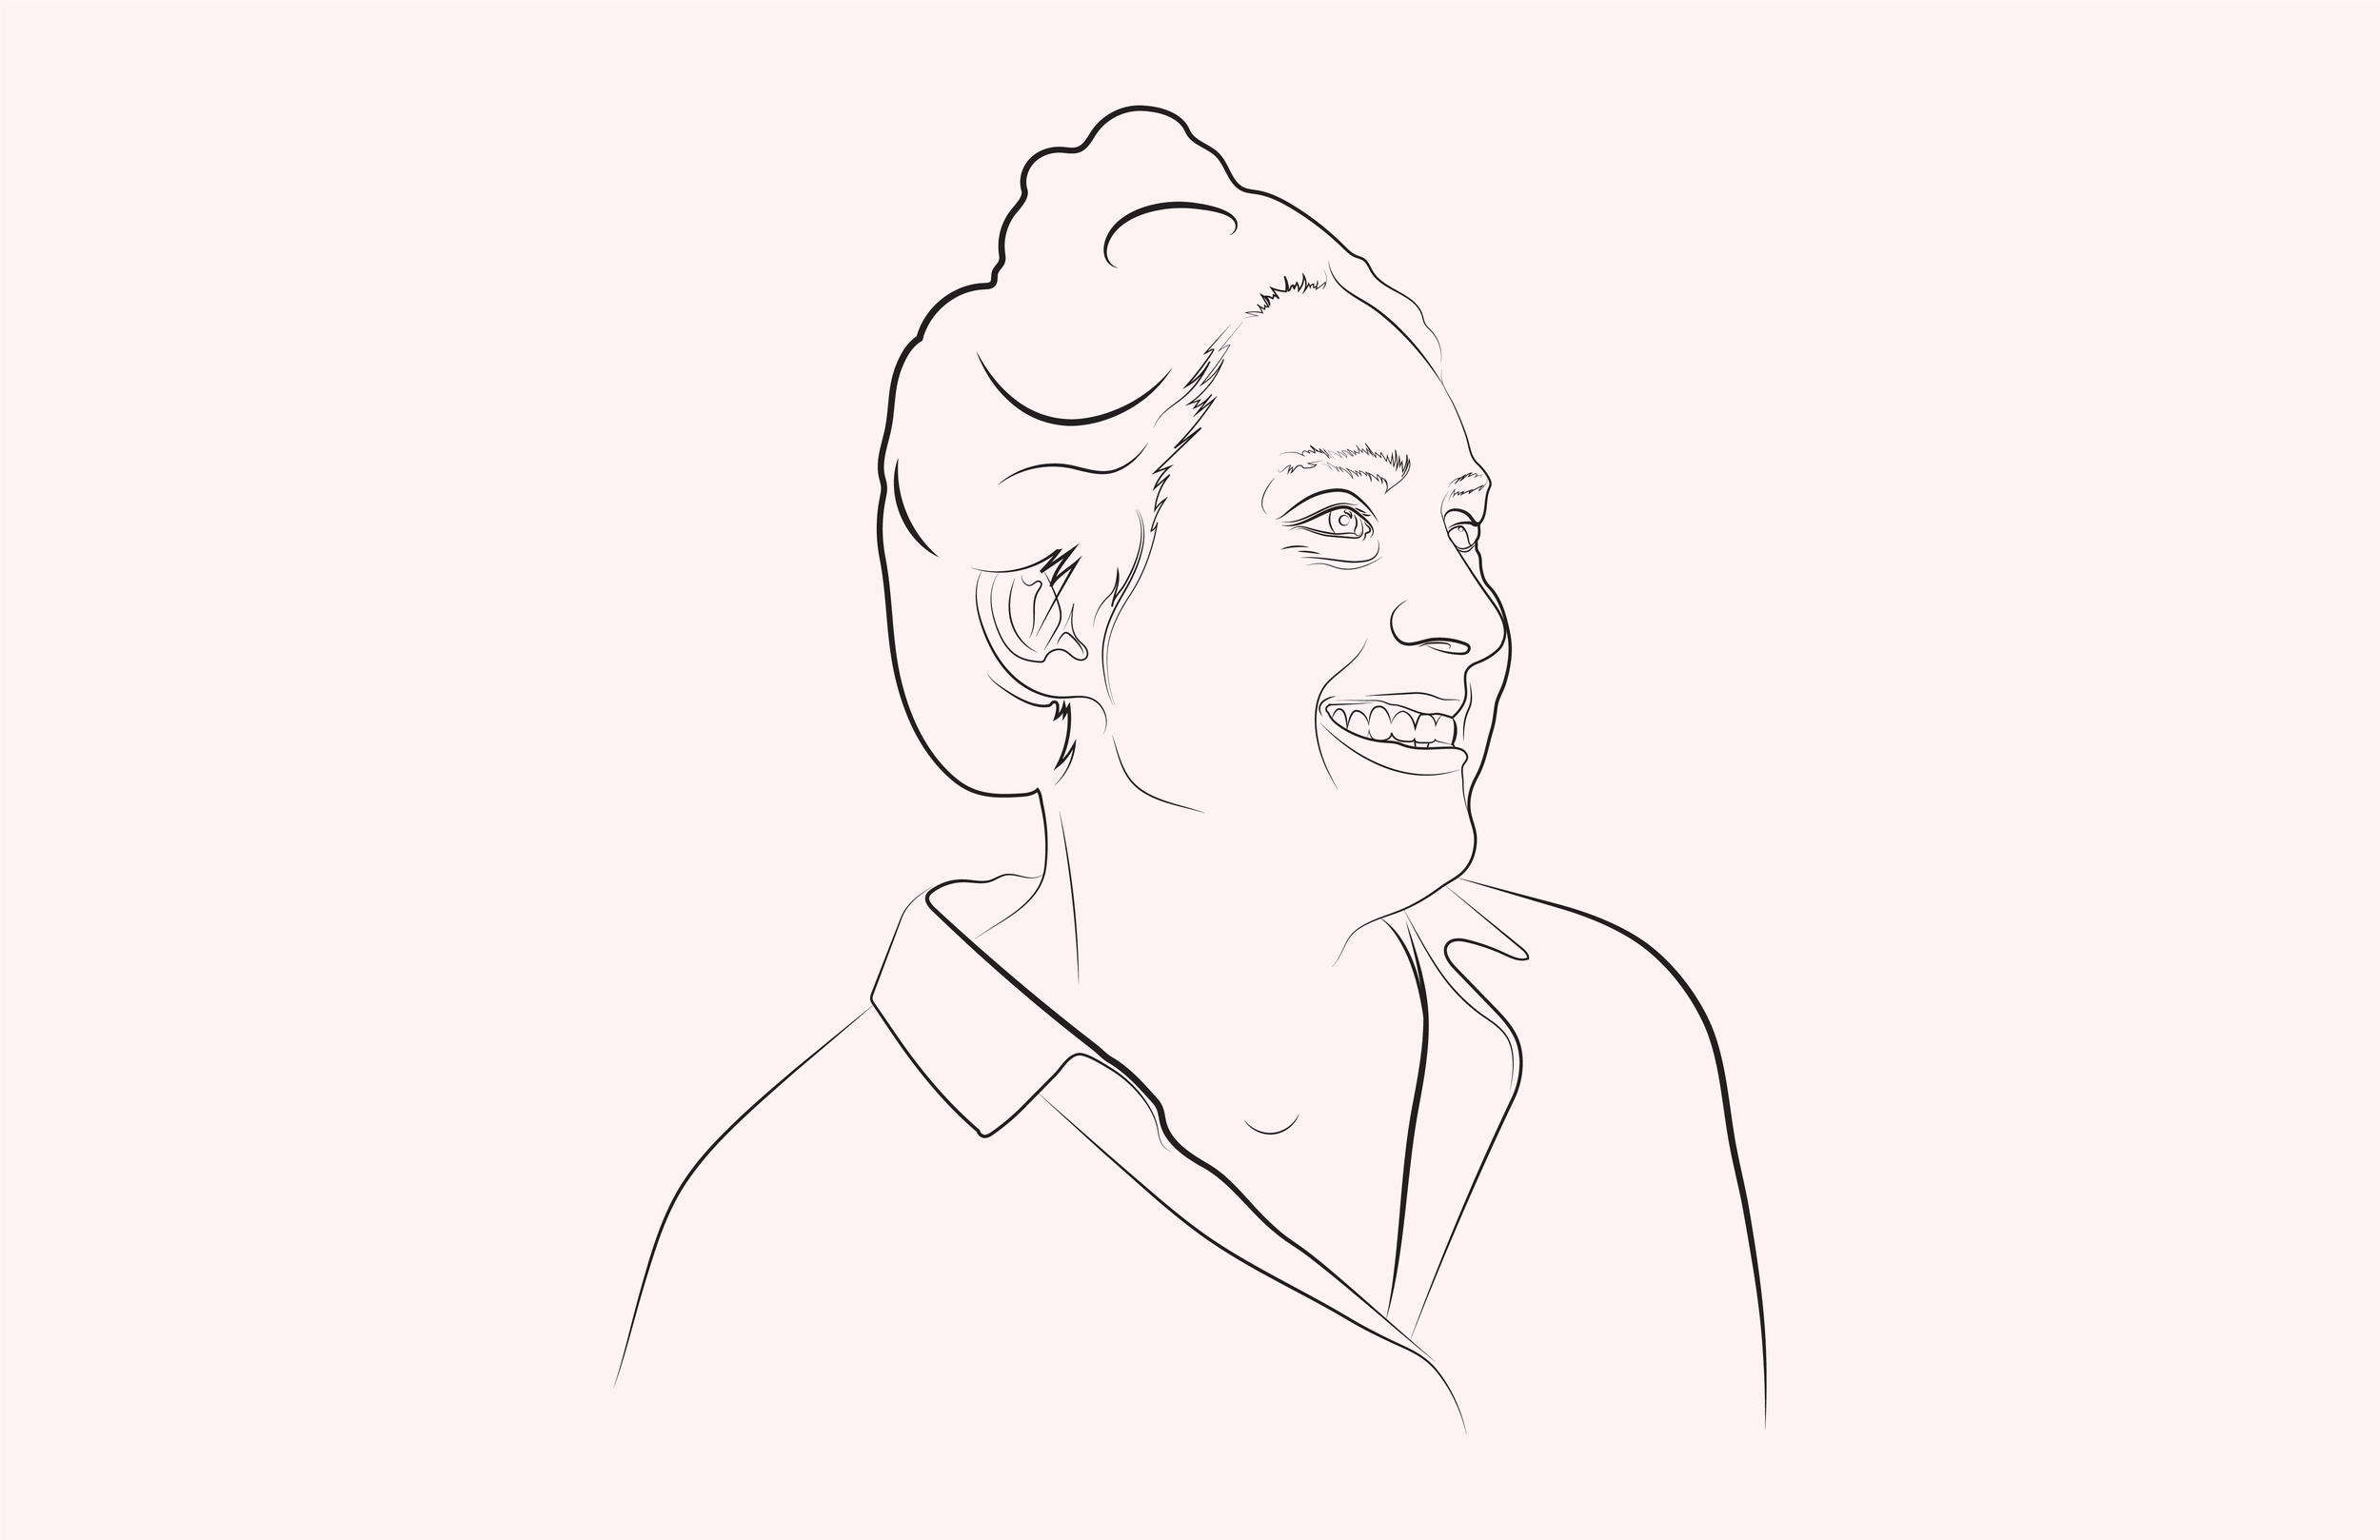 All_Sketches_ILANA KOHN.png